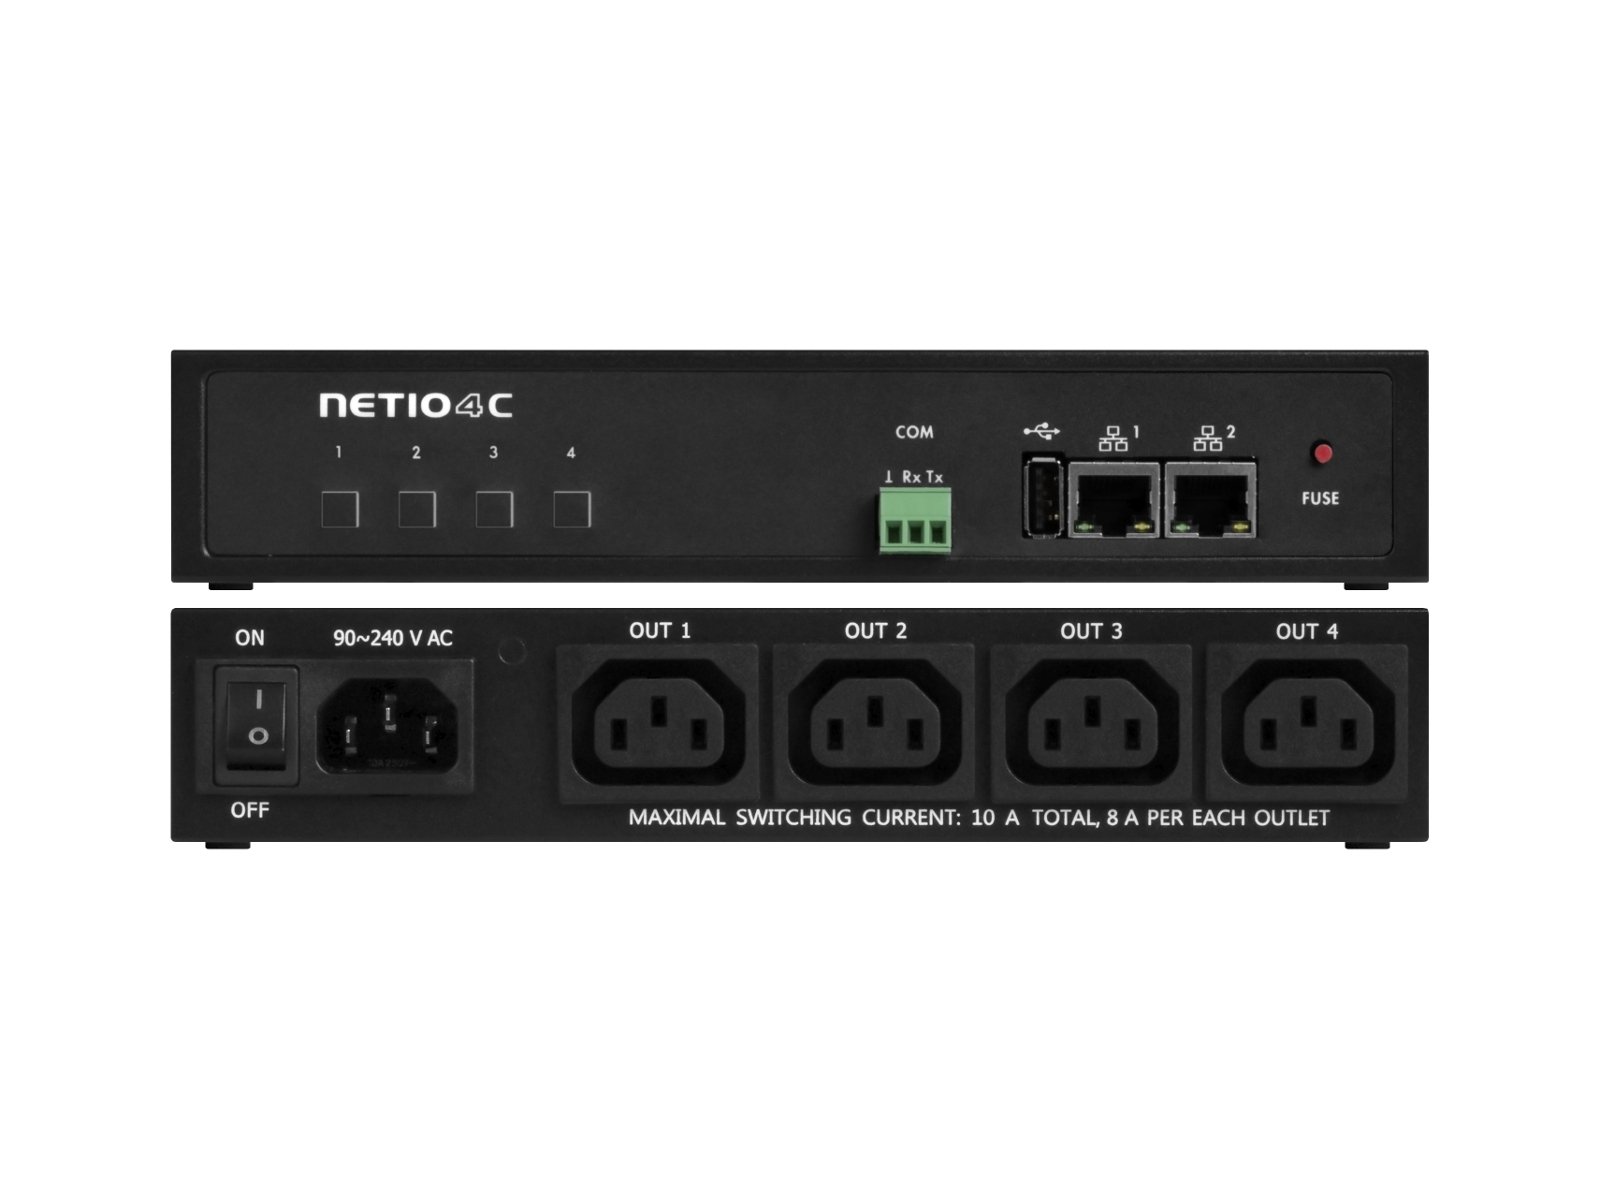 outlet, power outlet, NETIO 4C, PDU, smart PDU, power distribution unit, IEC 320 – c14, IEC 320 – C13, SNMP v3, rack pdu, web controlled power switch,